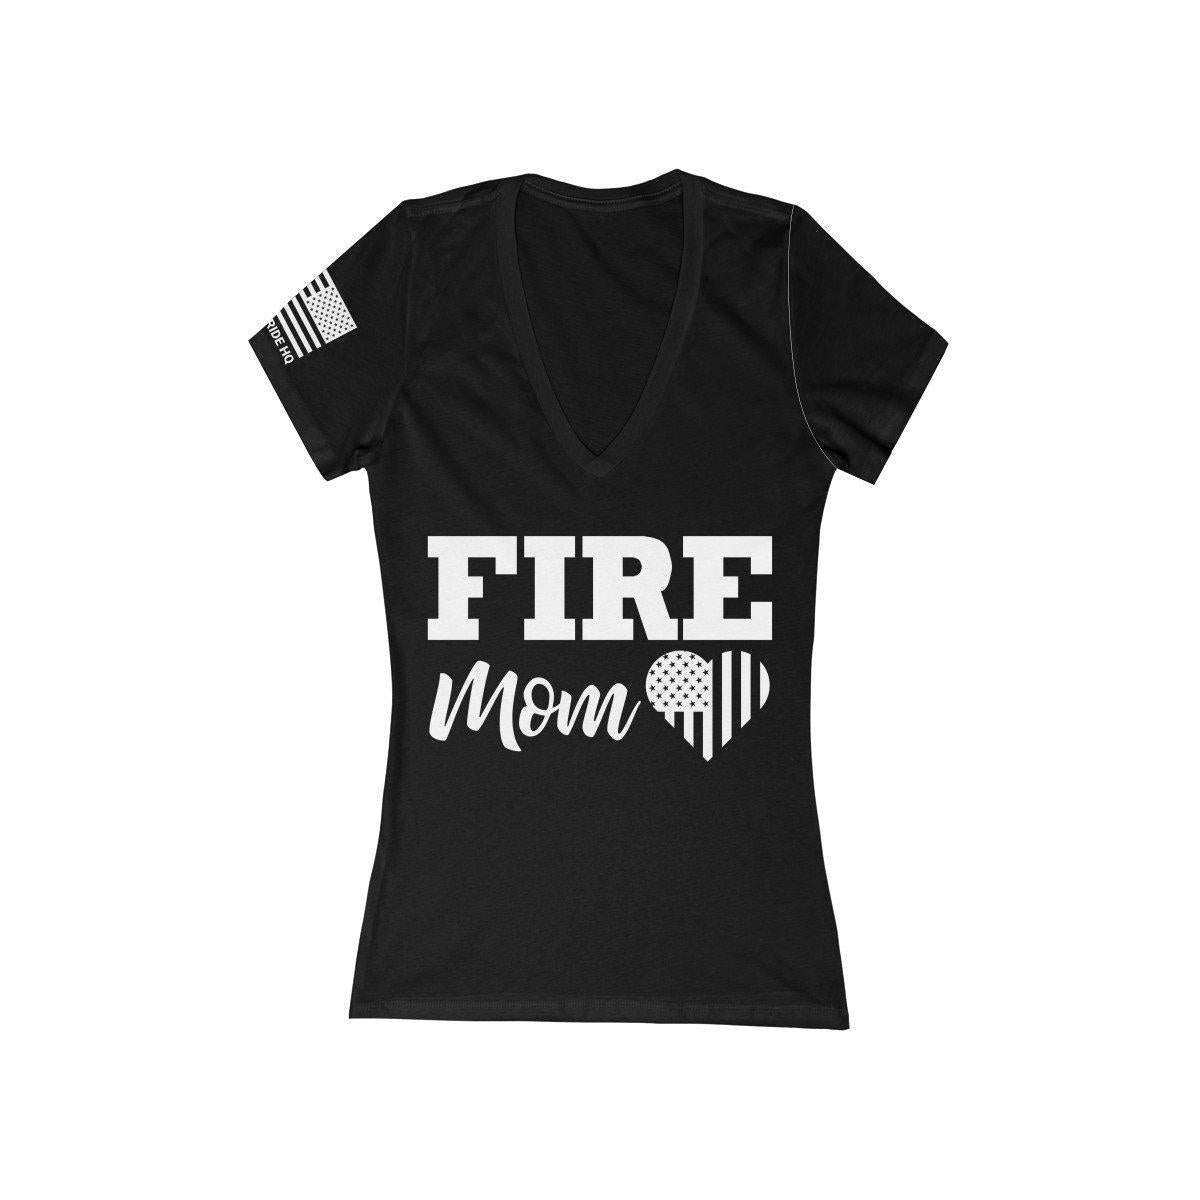 Firefighter's Mom Women's V-Neck Tee